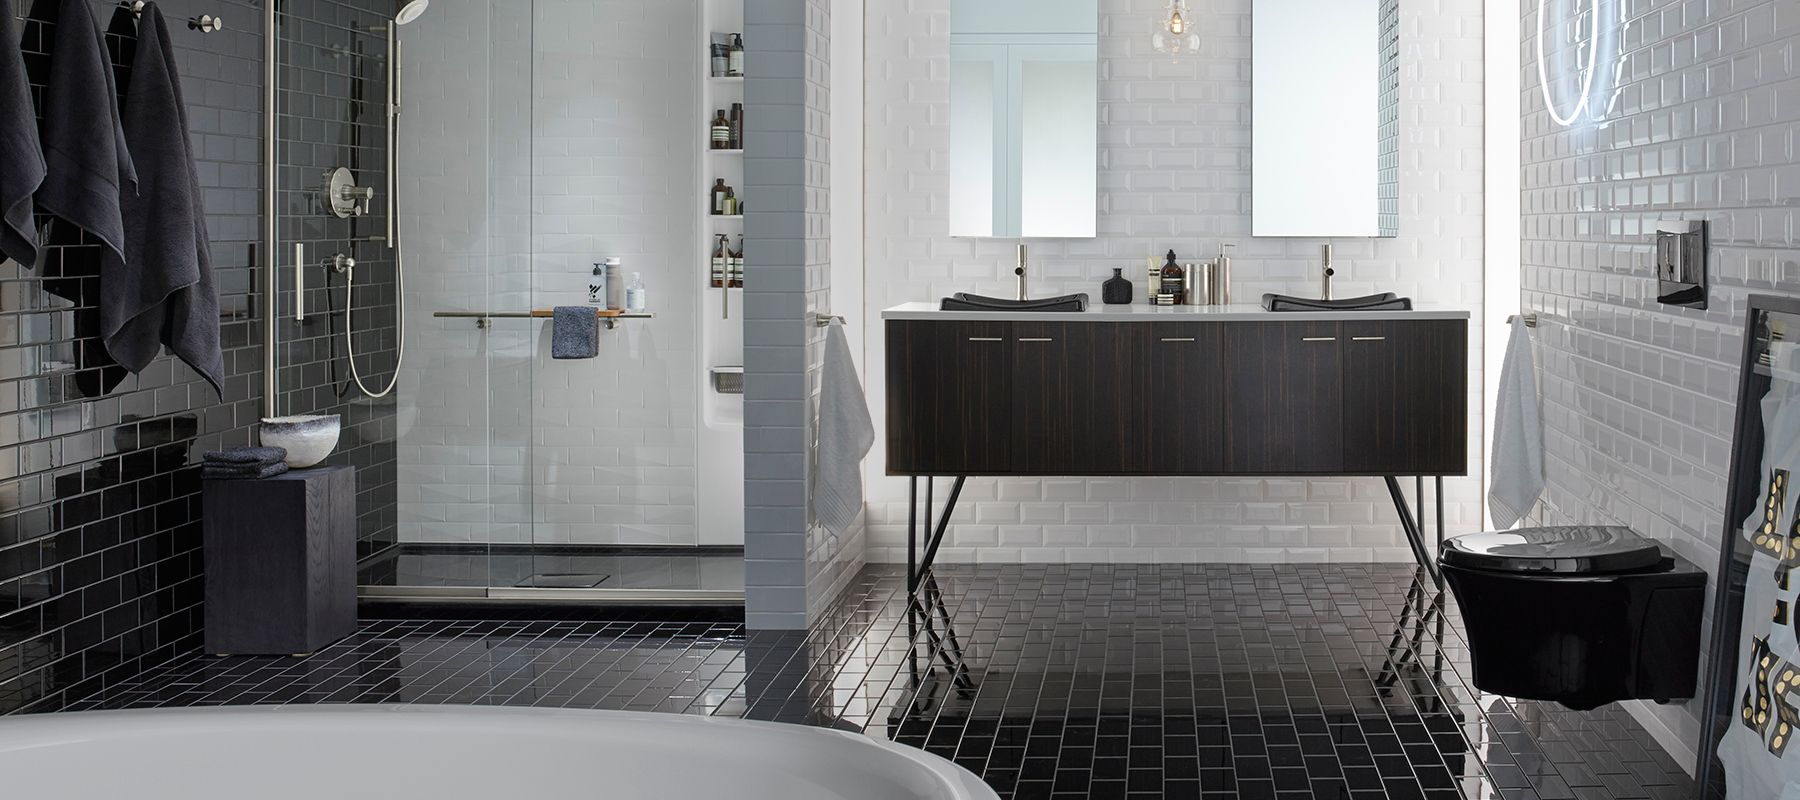 Bathroom Accessories Bathroom KOHLER - Kohler devonshire bathroom collection